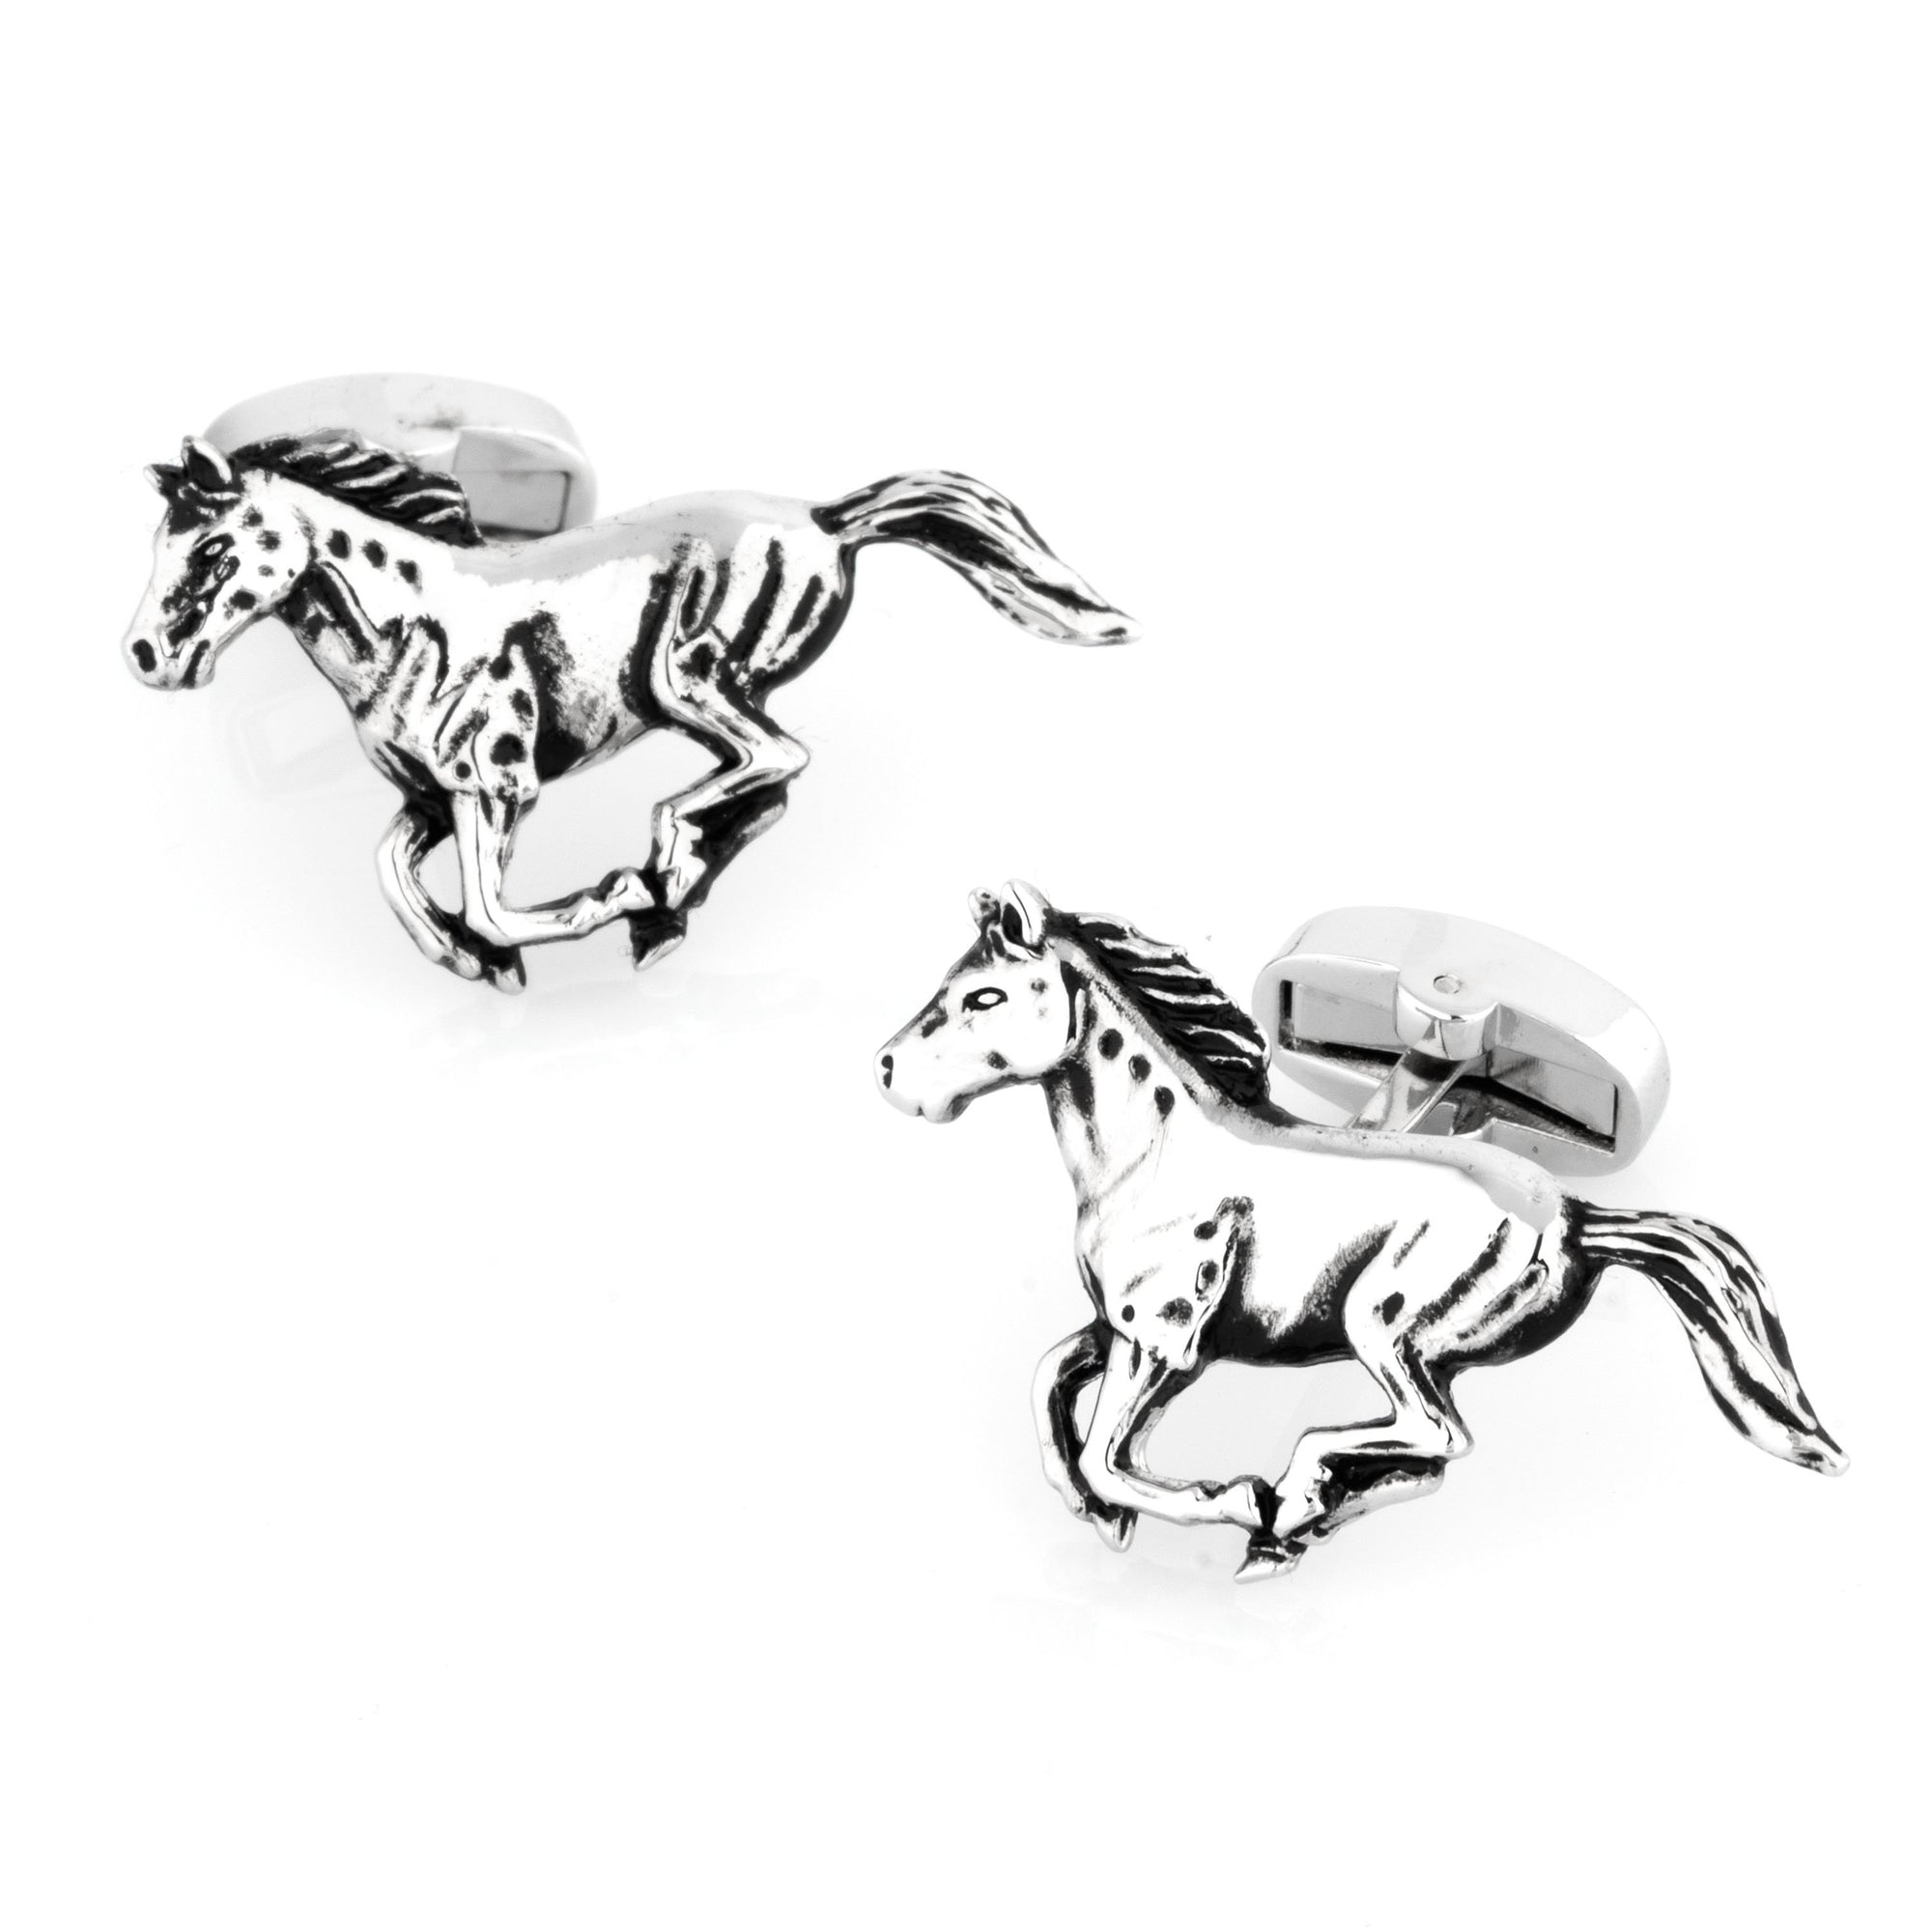 Silver Galloping Horses Cufflinks, Novelty Cufflinks, Cuffed.com.au, CL7006, Animals, Gambling, Horses, Clinks Australia